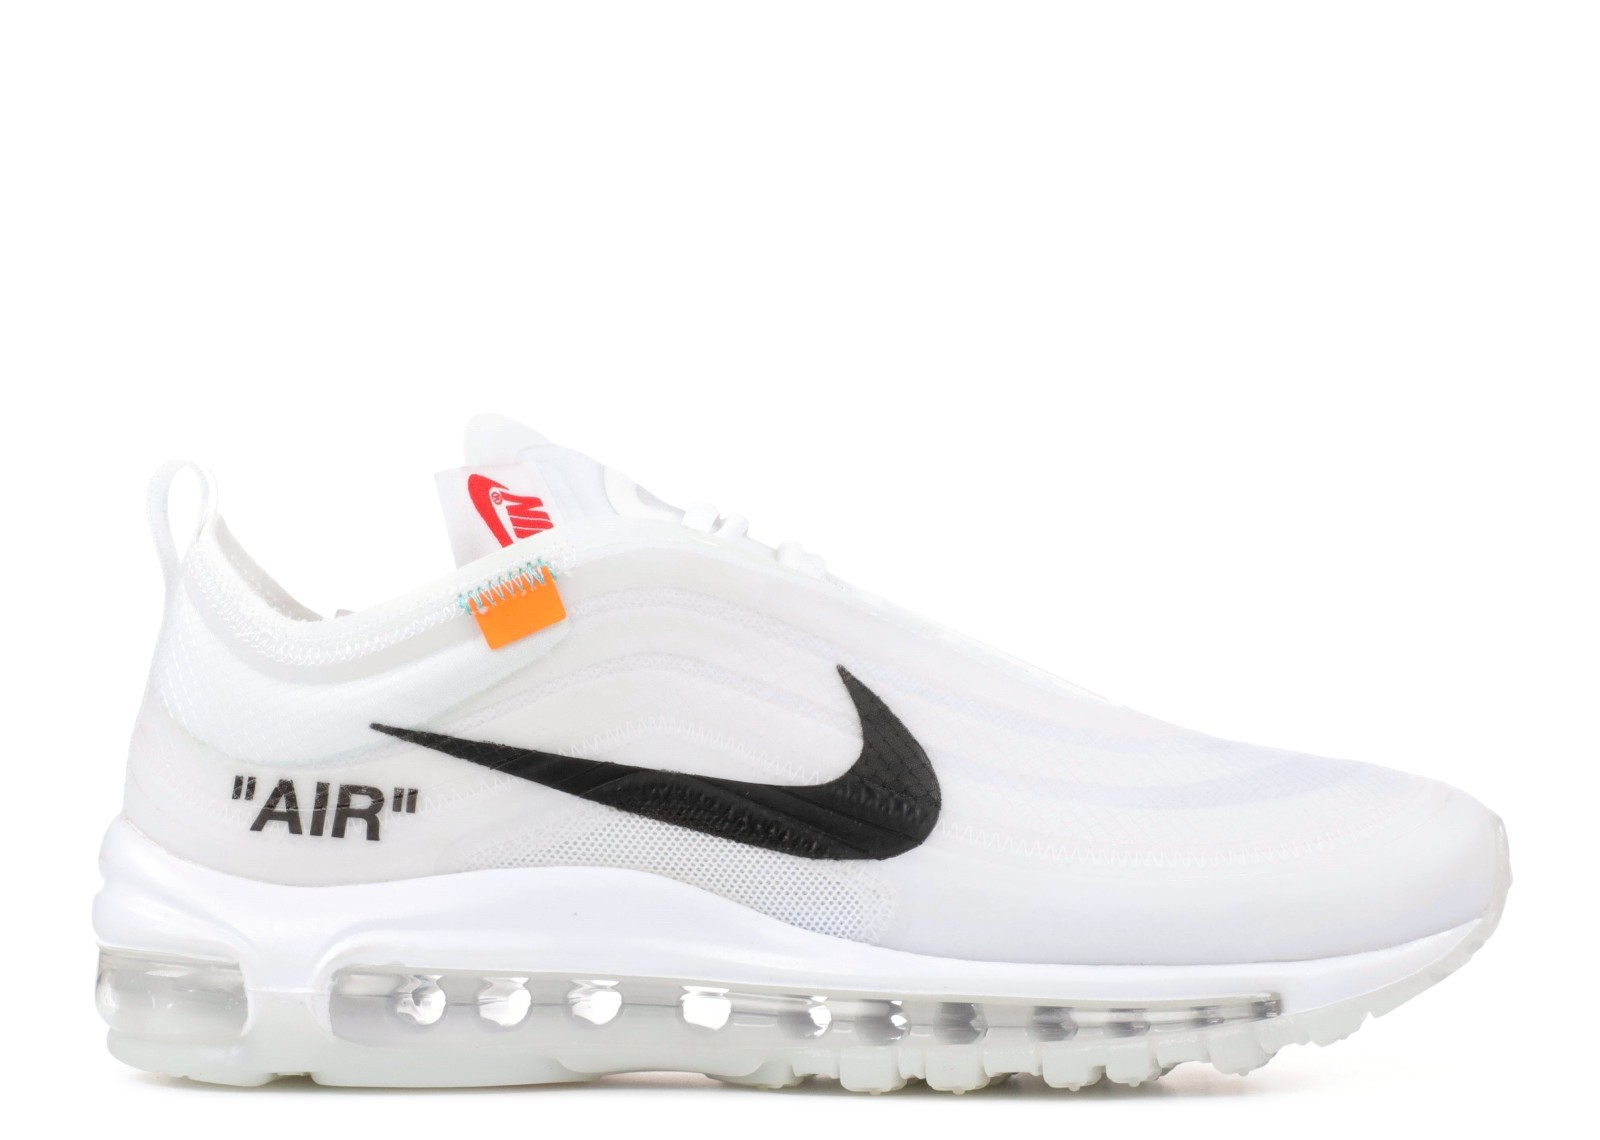 hot sale online 4f516 0e614 The 10 Nike Air Max 97 Og Off white Blue White Cone Ice AJ4585-100